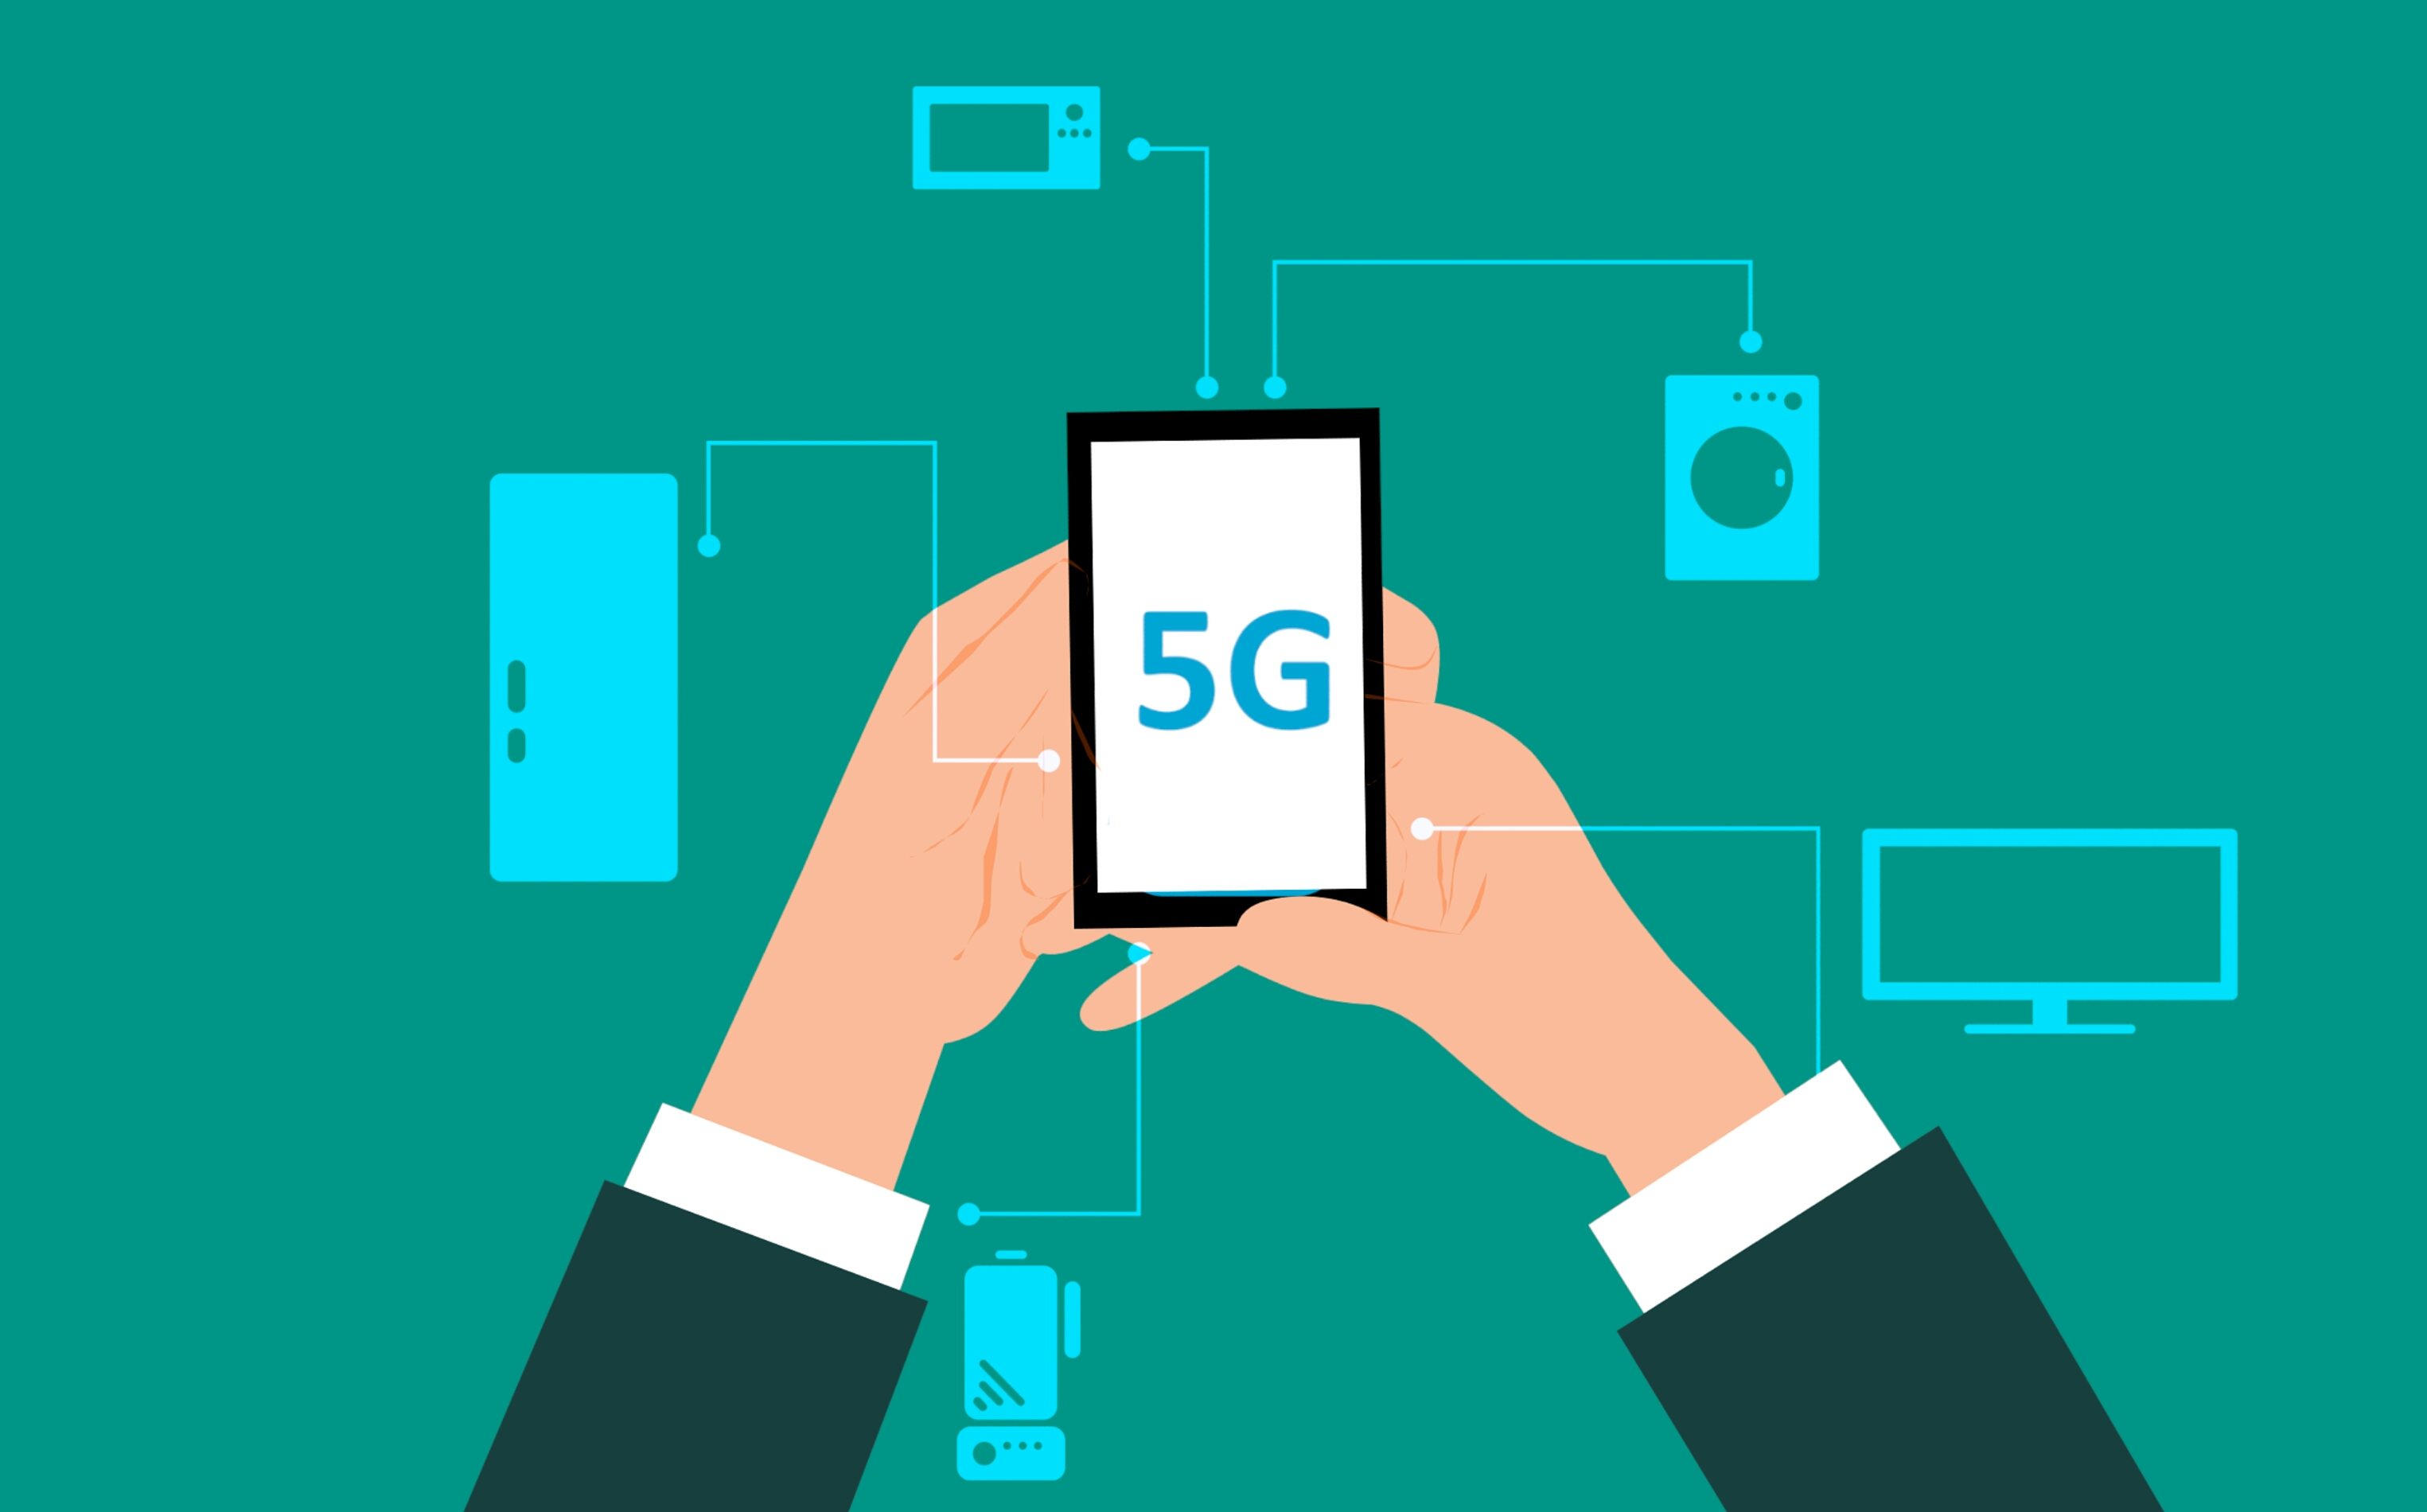 Network Optimization Interconnection and 5G